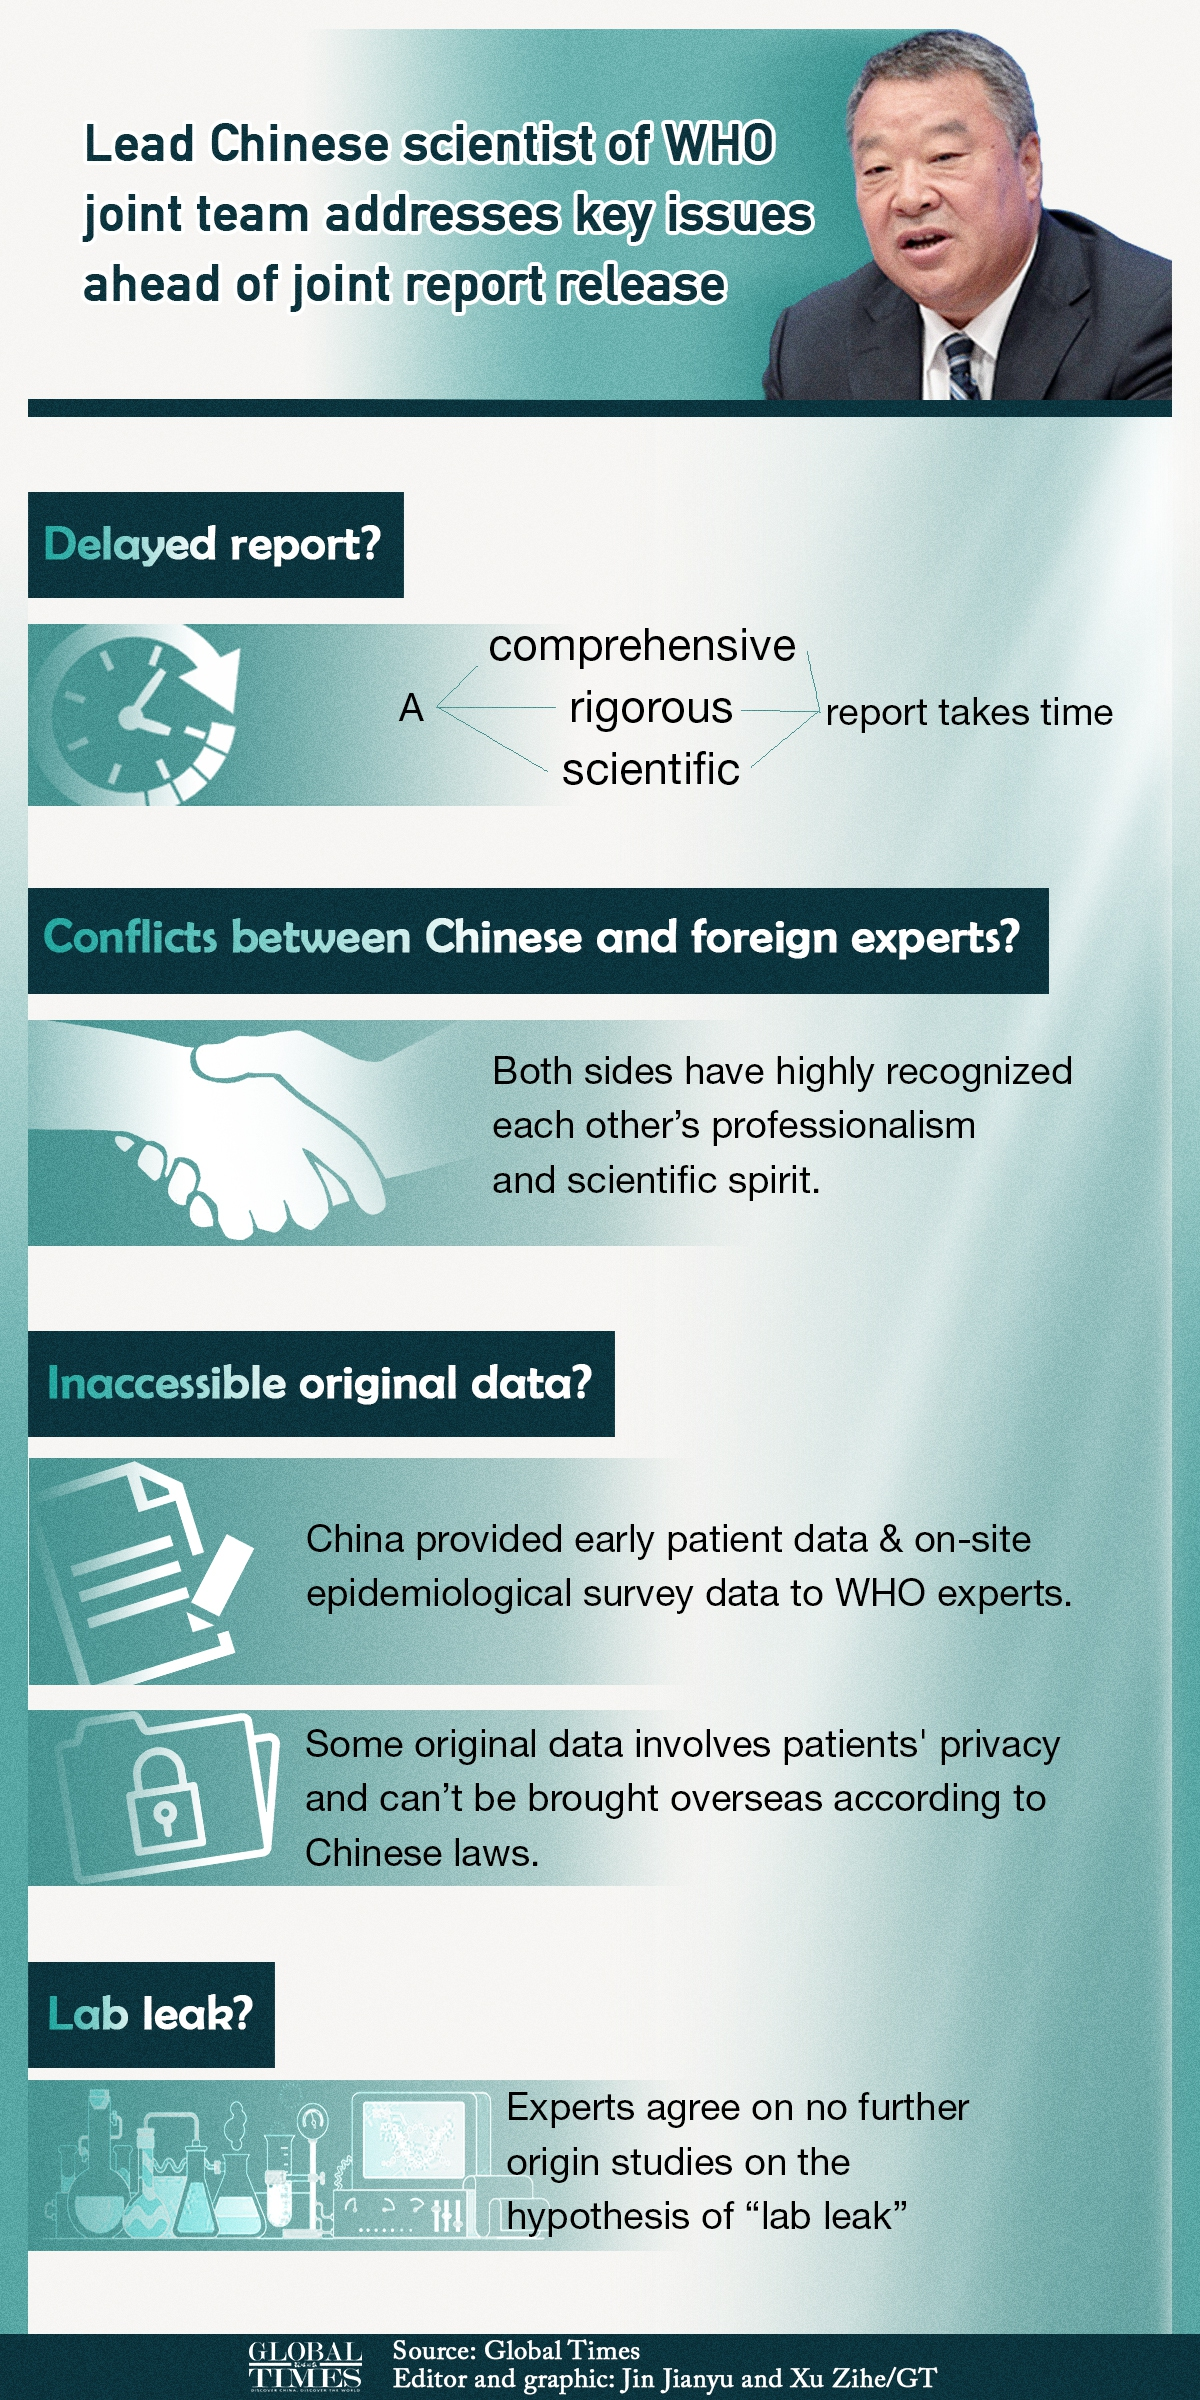 Lead Chinese scientist of WHO joint team addresses key issues ahead of joint report release Graphic: Xu Zihe/GT